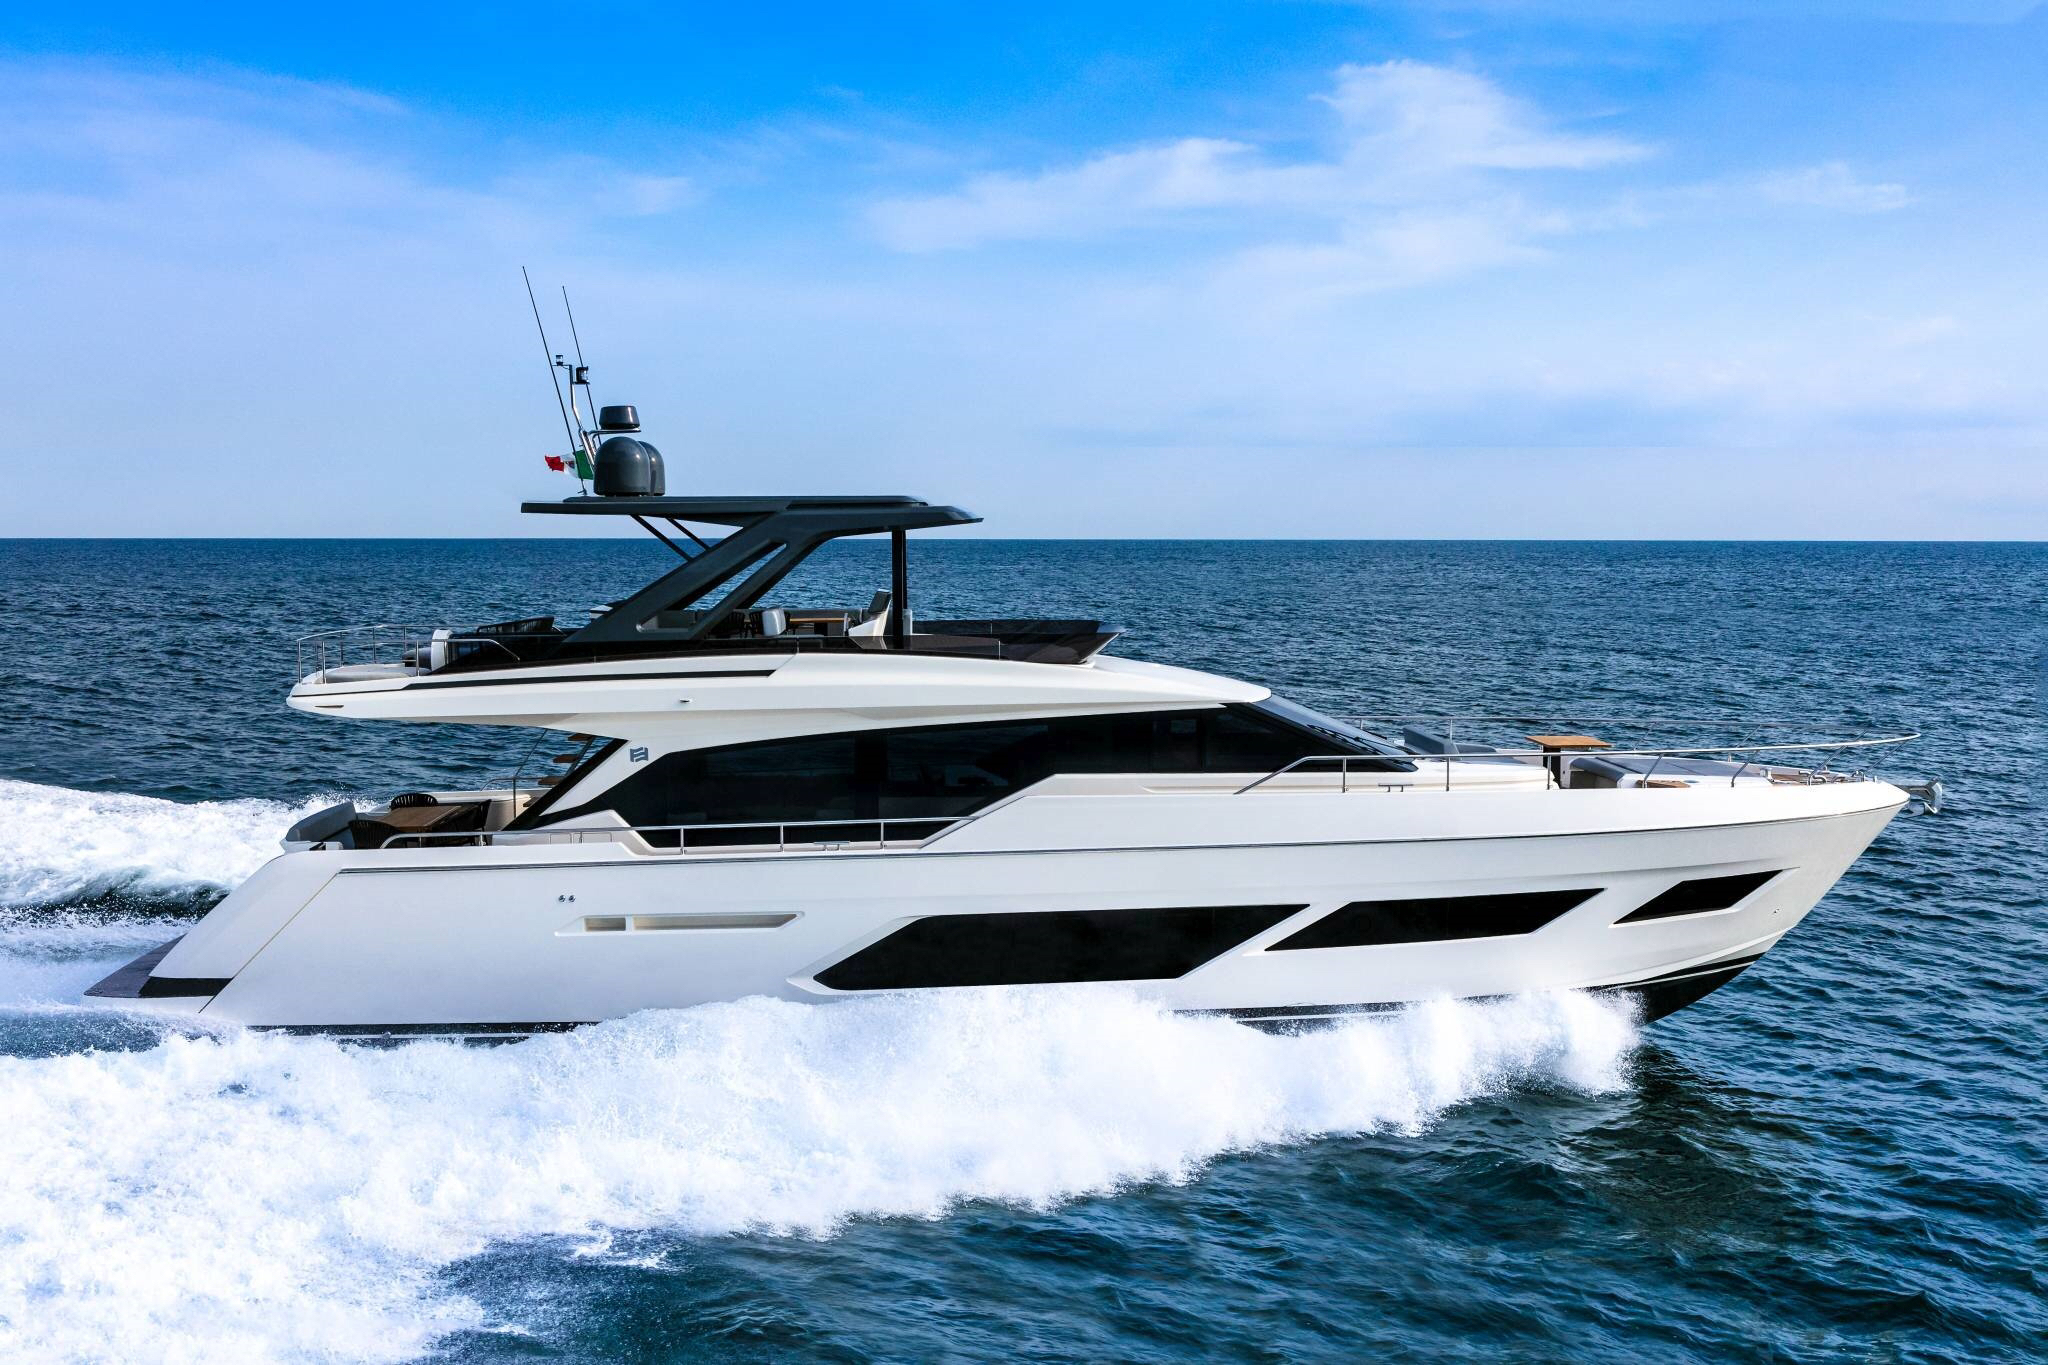 ferretti yachts 720 ferretti group JMA Yachting Port Fréjus Var vente location neuf occasion places de port